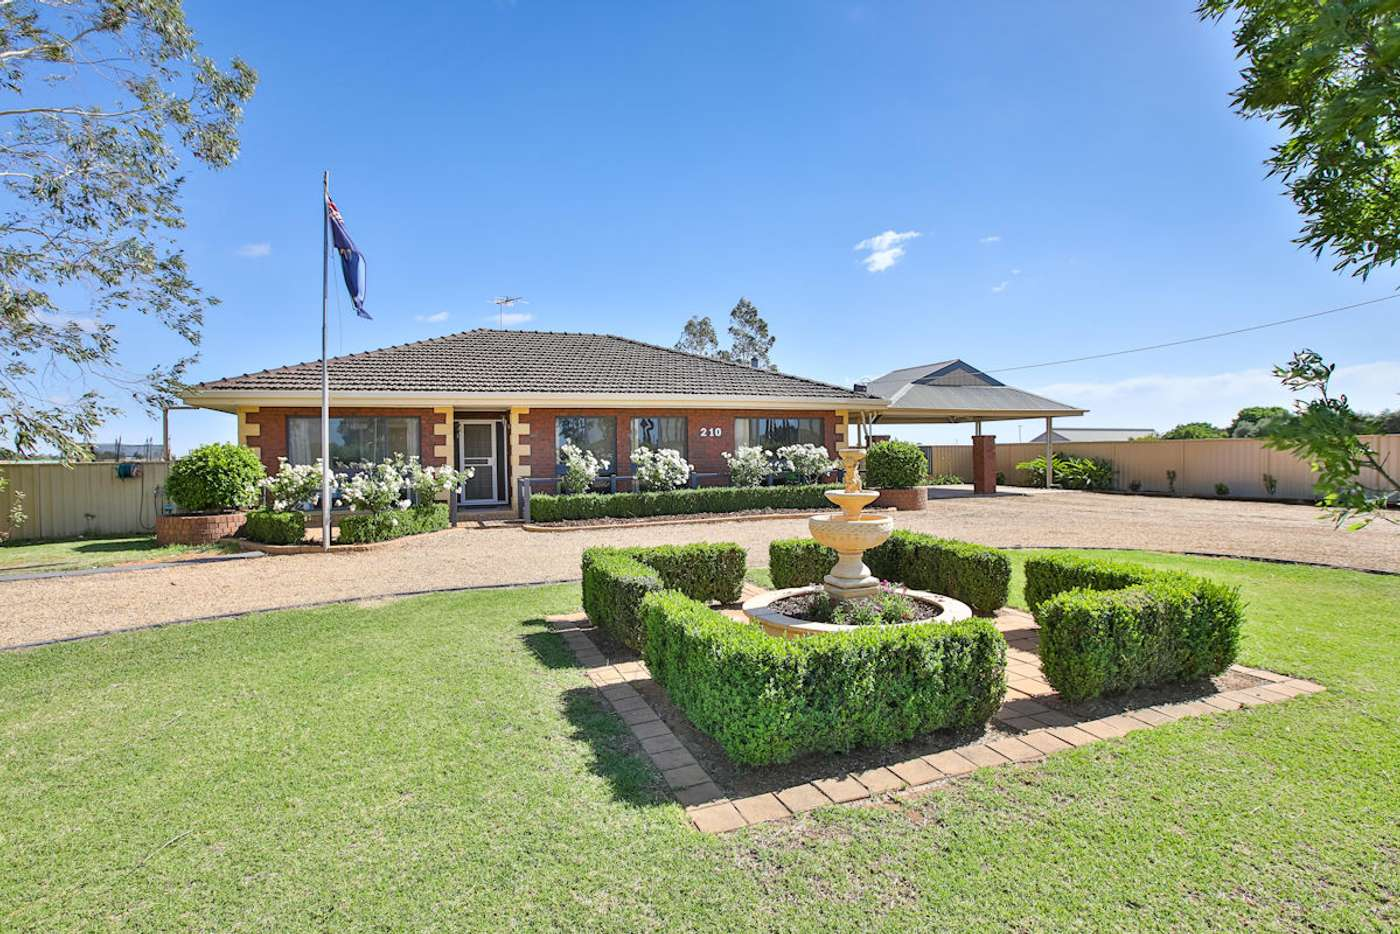 Main view of Homely house listing, 210 Fifth Street, Merbein VIC 3505